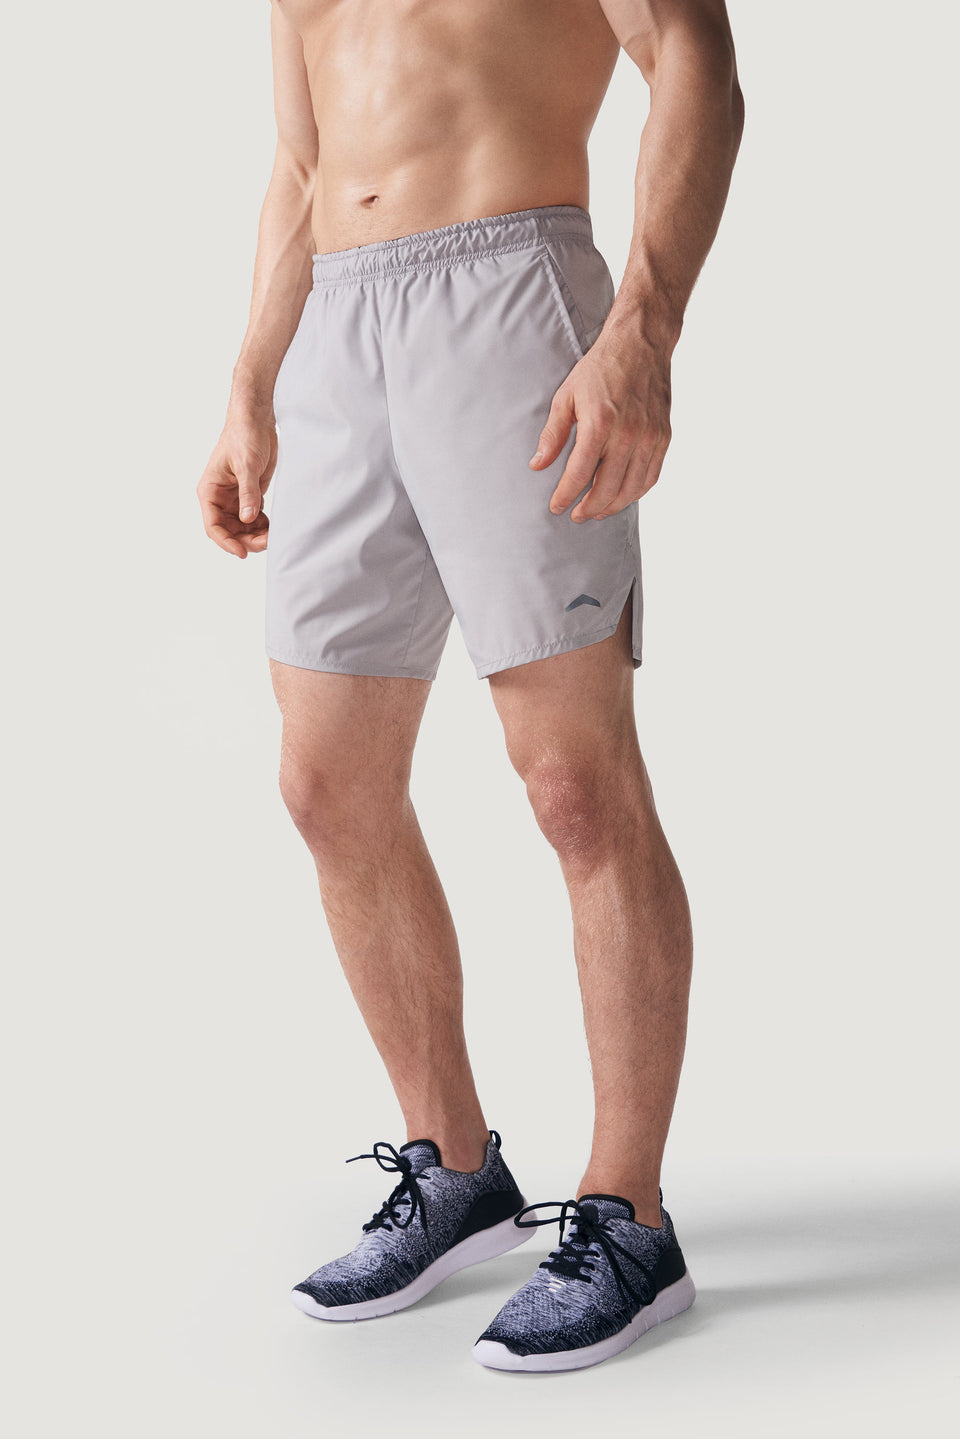 TMPL Sportswear Men's Alpha Training Short